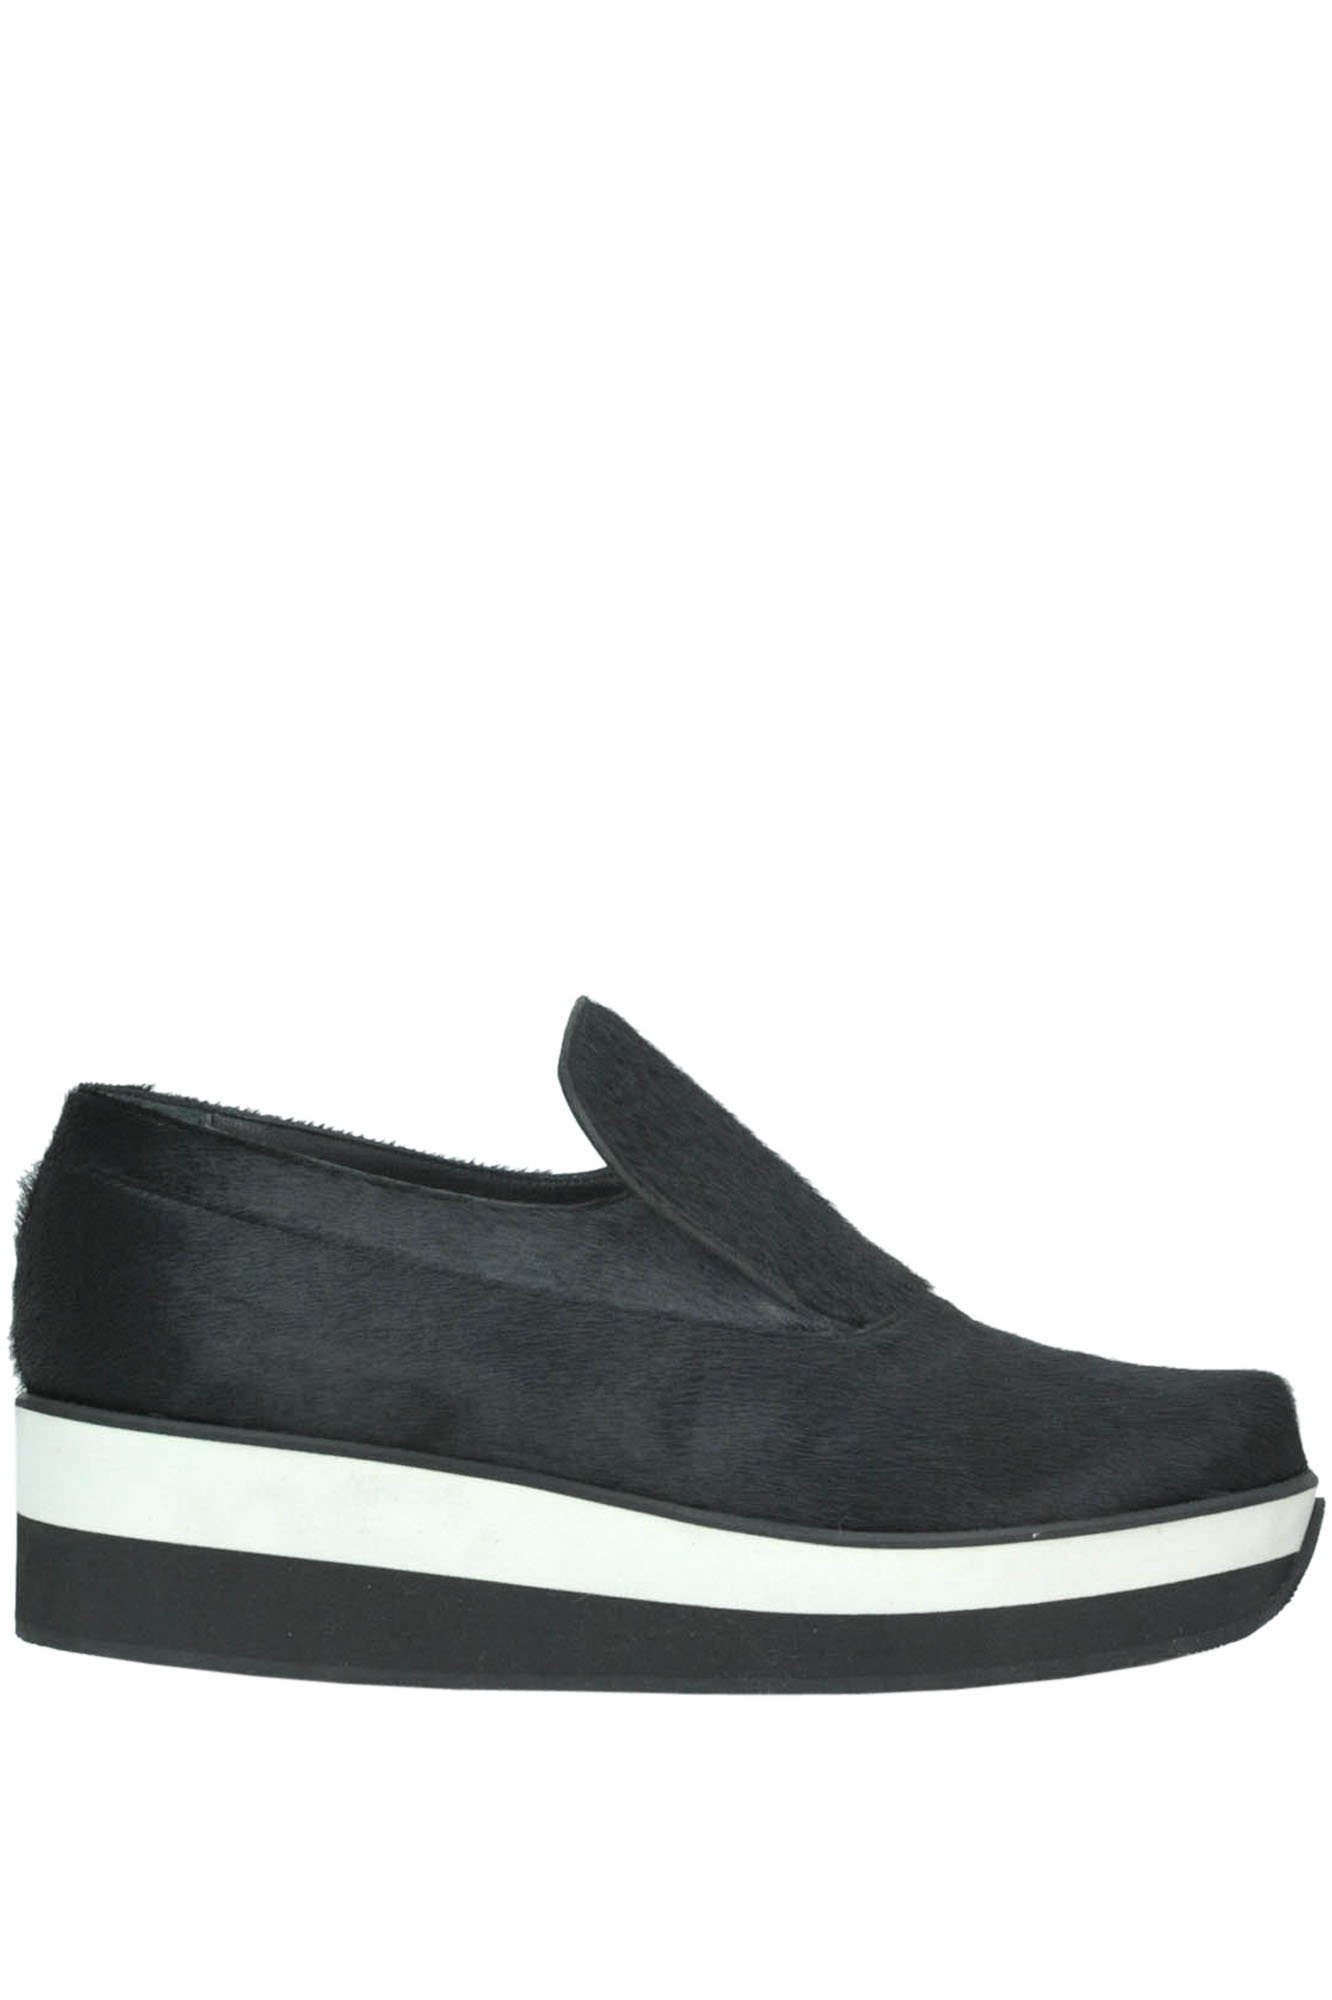 Image of Scarpe slip-on in cavallino